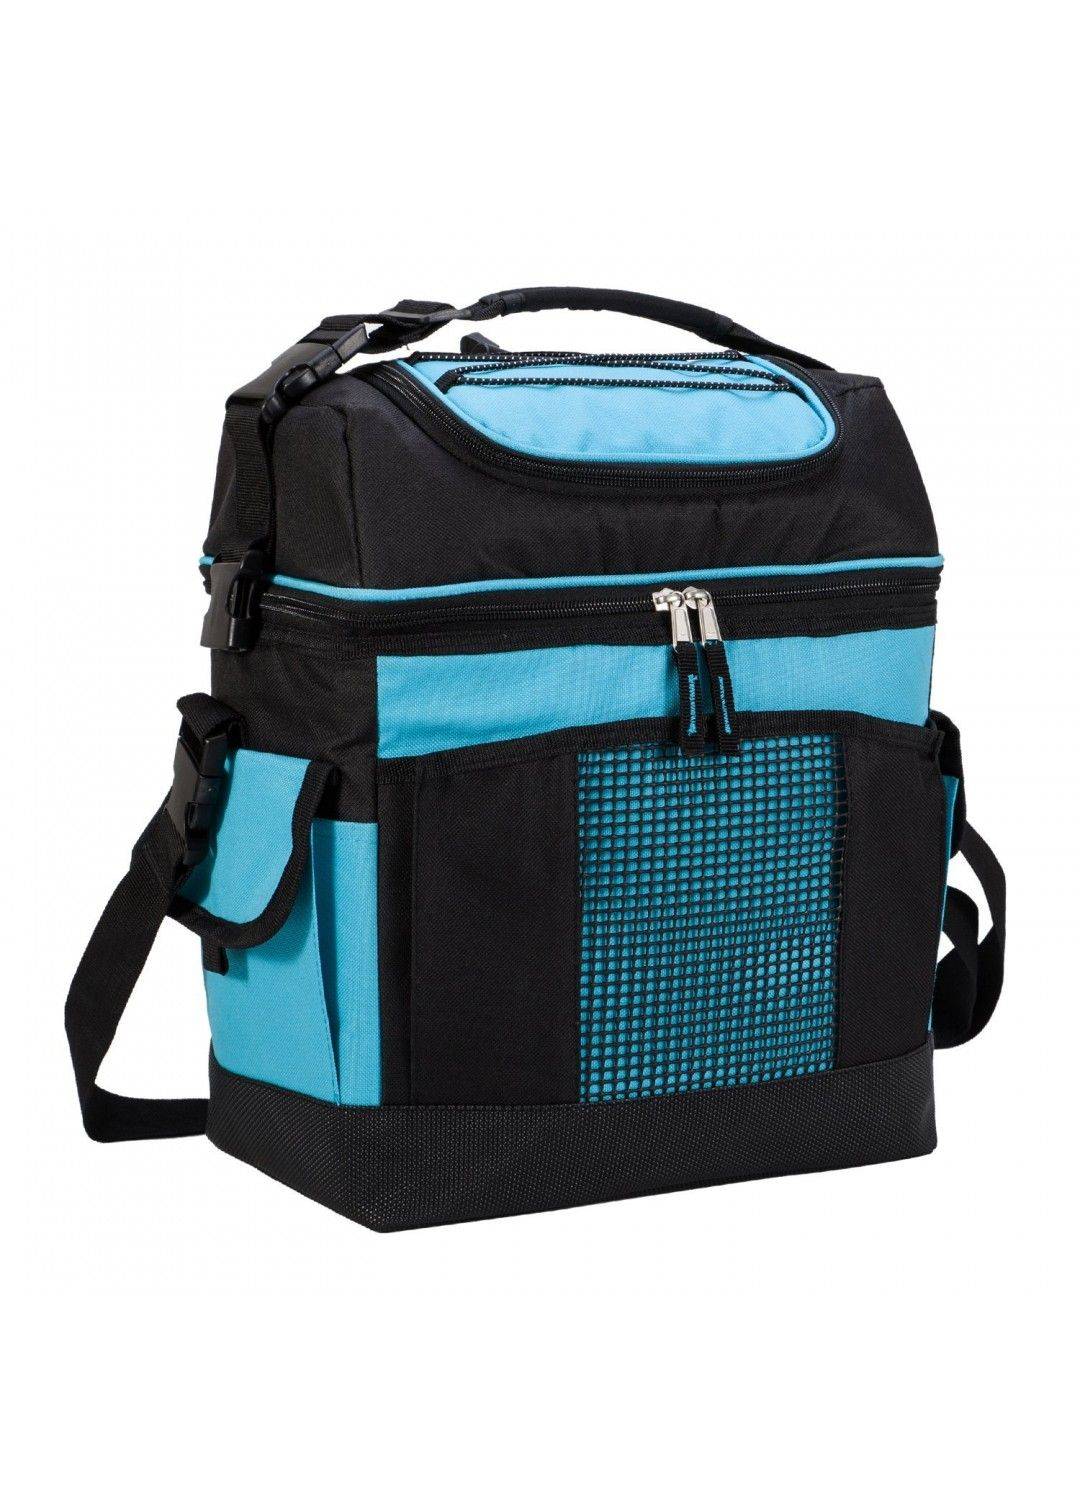 Mier 2 Compartment Cooler Bag Tote Large Insulated Lunch Bag For Picnic Grocery Kayak Car Travel 24can Large Insulated Lunch Bag Cooler Bag Lunch Bag